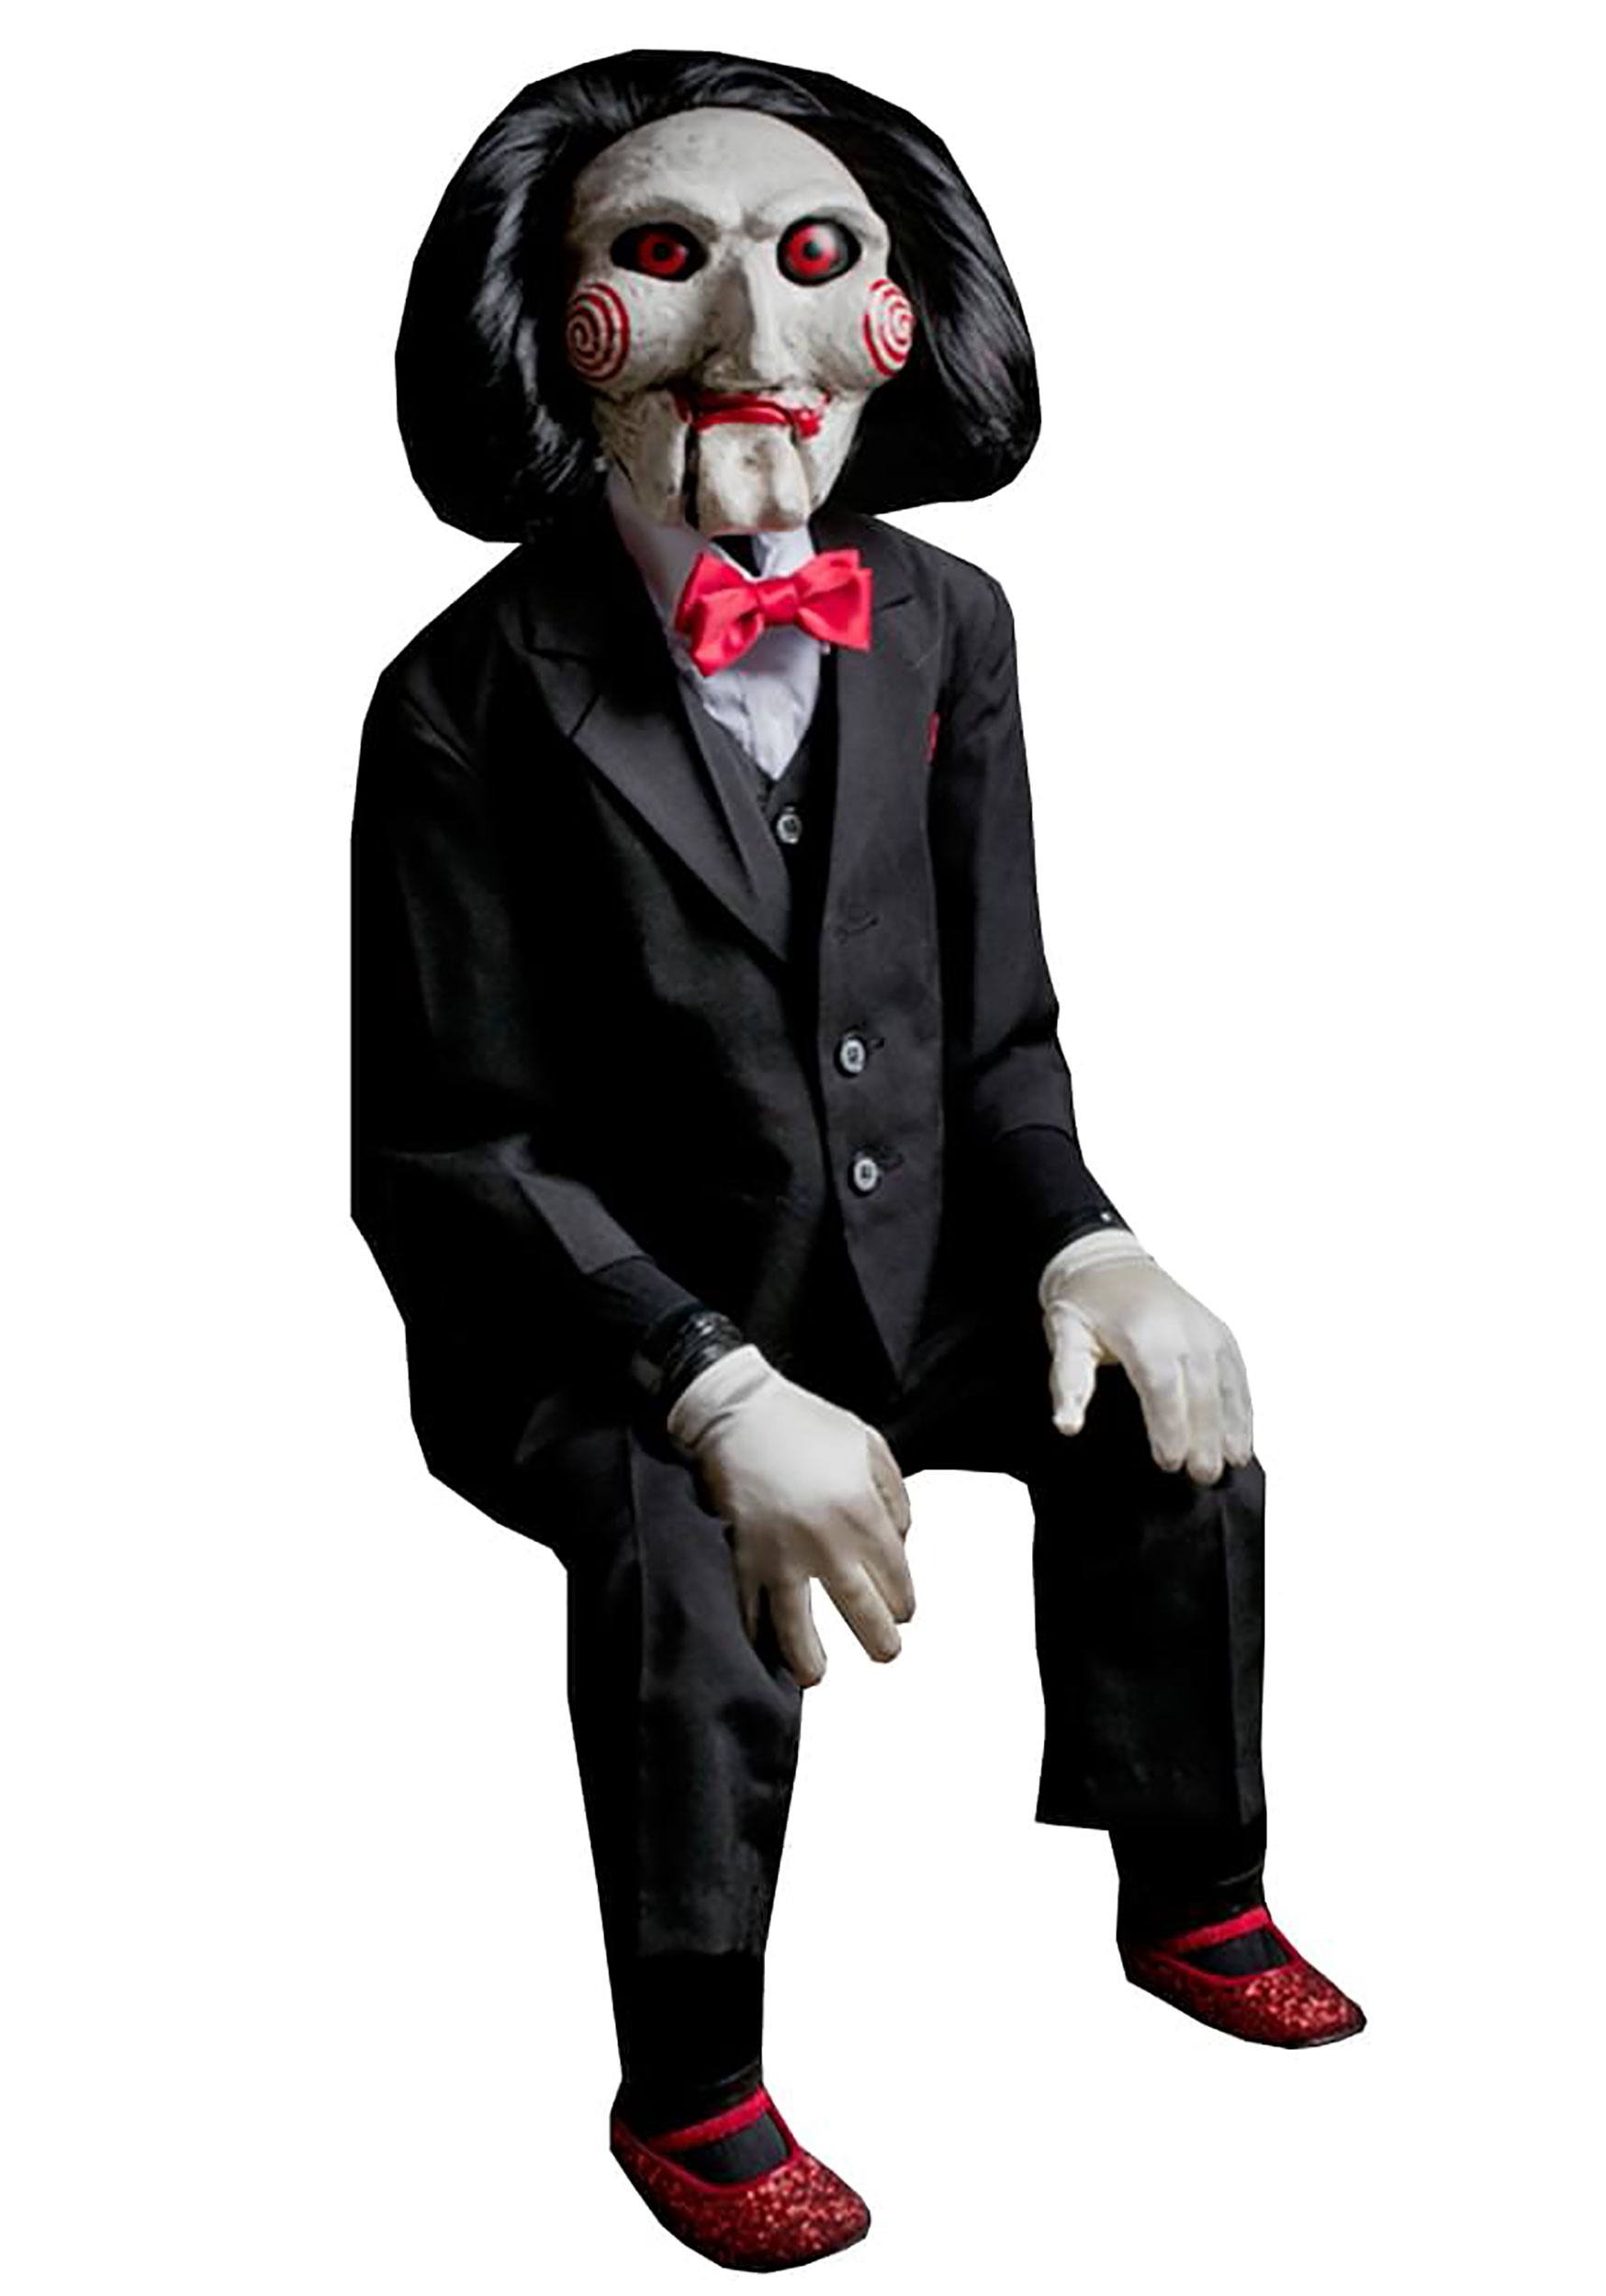 Billy Puppet Saw Prop